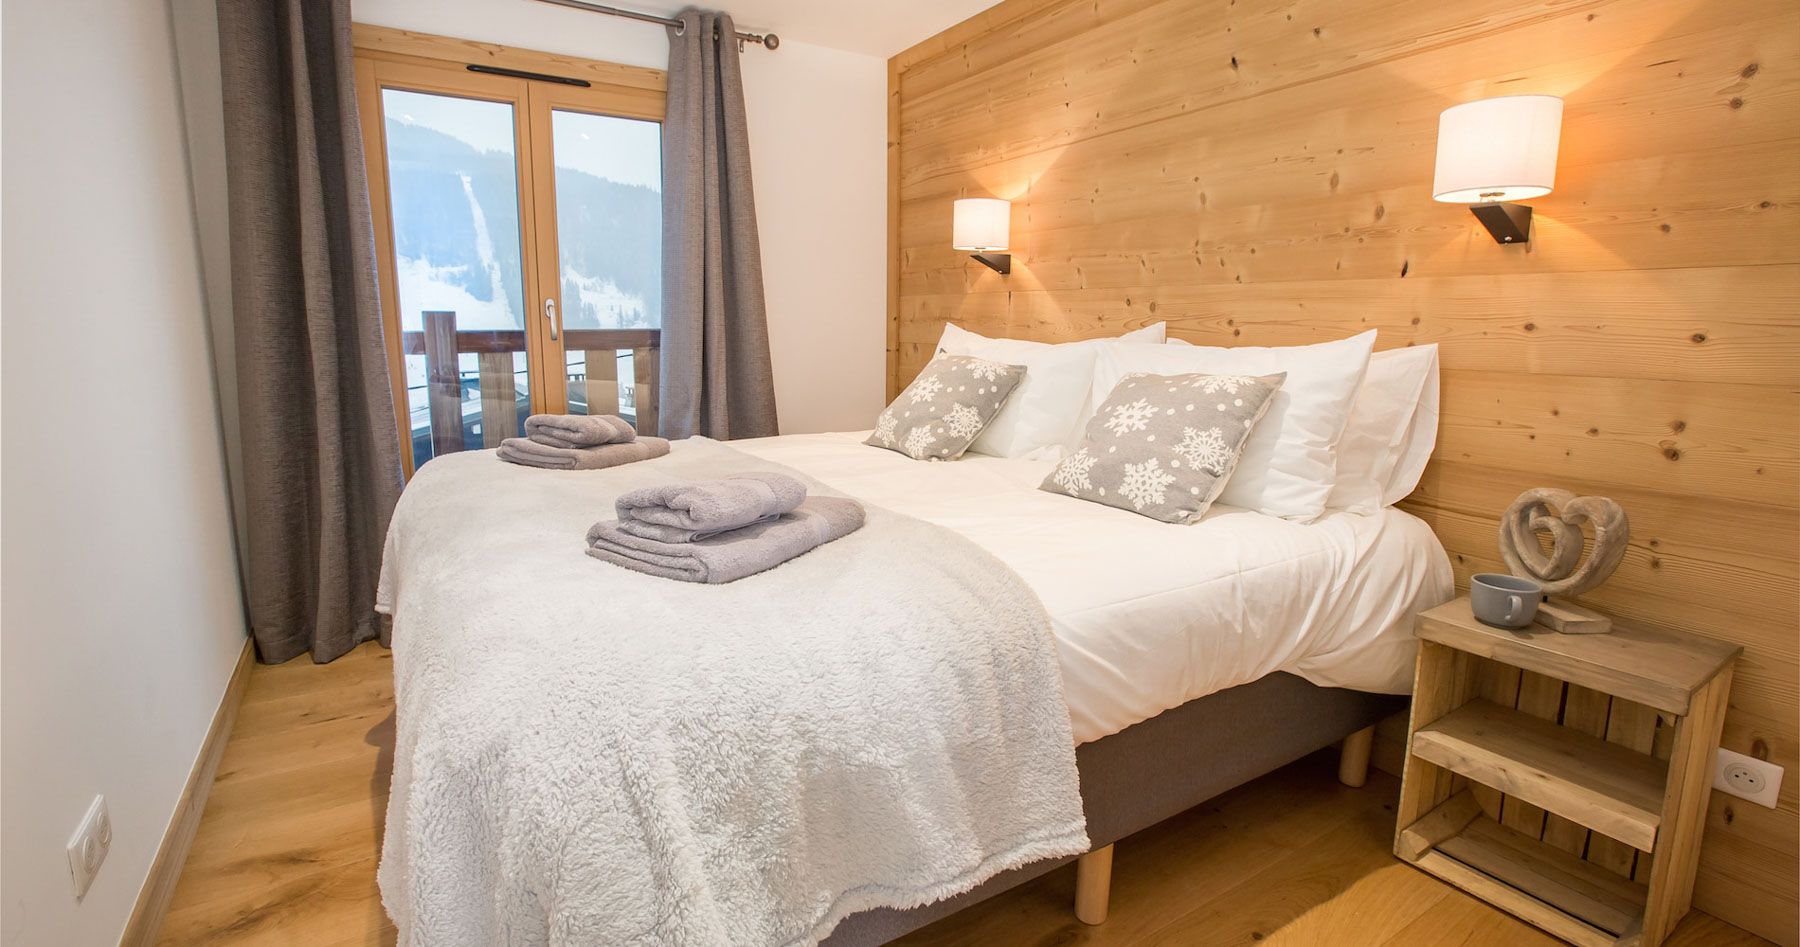 Chalet-perdrix-bedroom-with-balcony